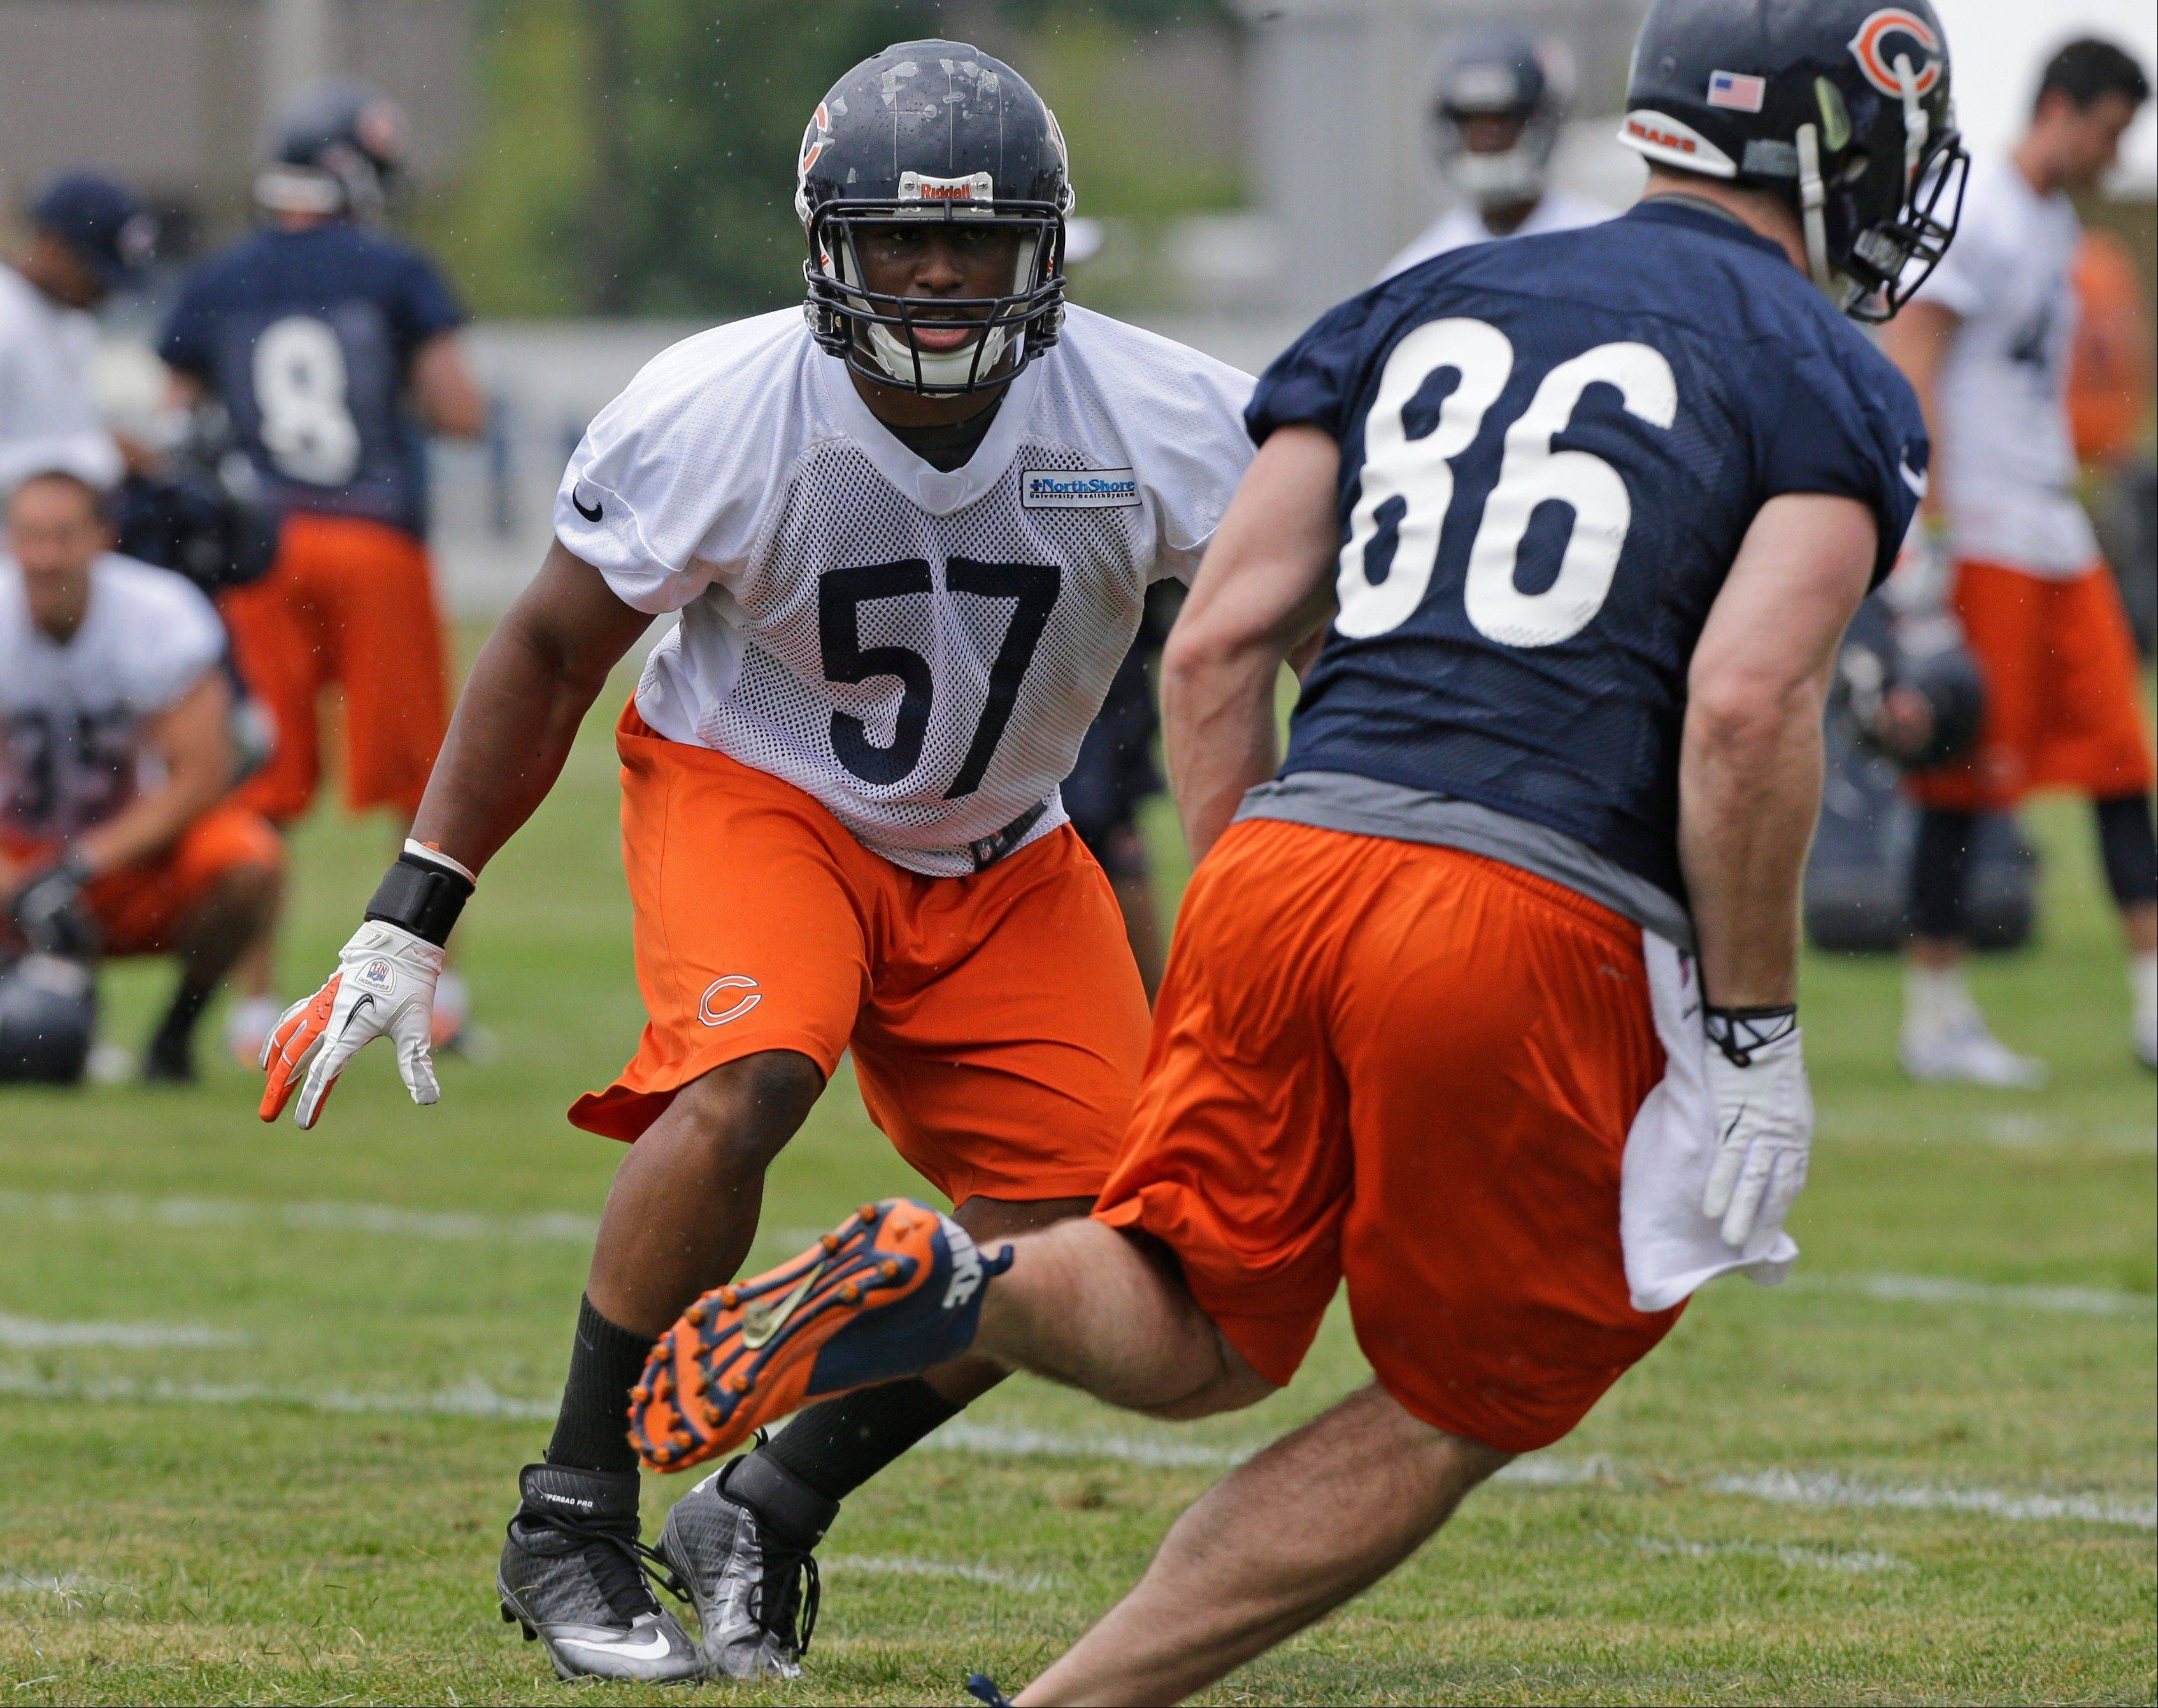 Chicago Bears linebacker Jonathan Bostic works with teammates.